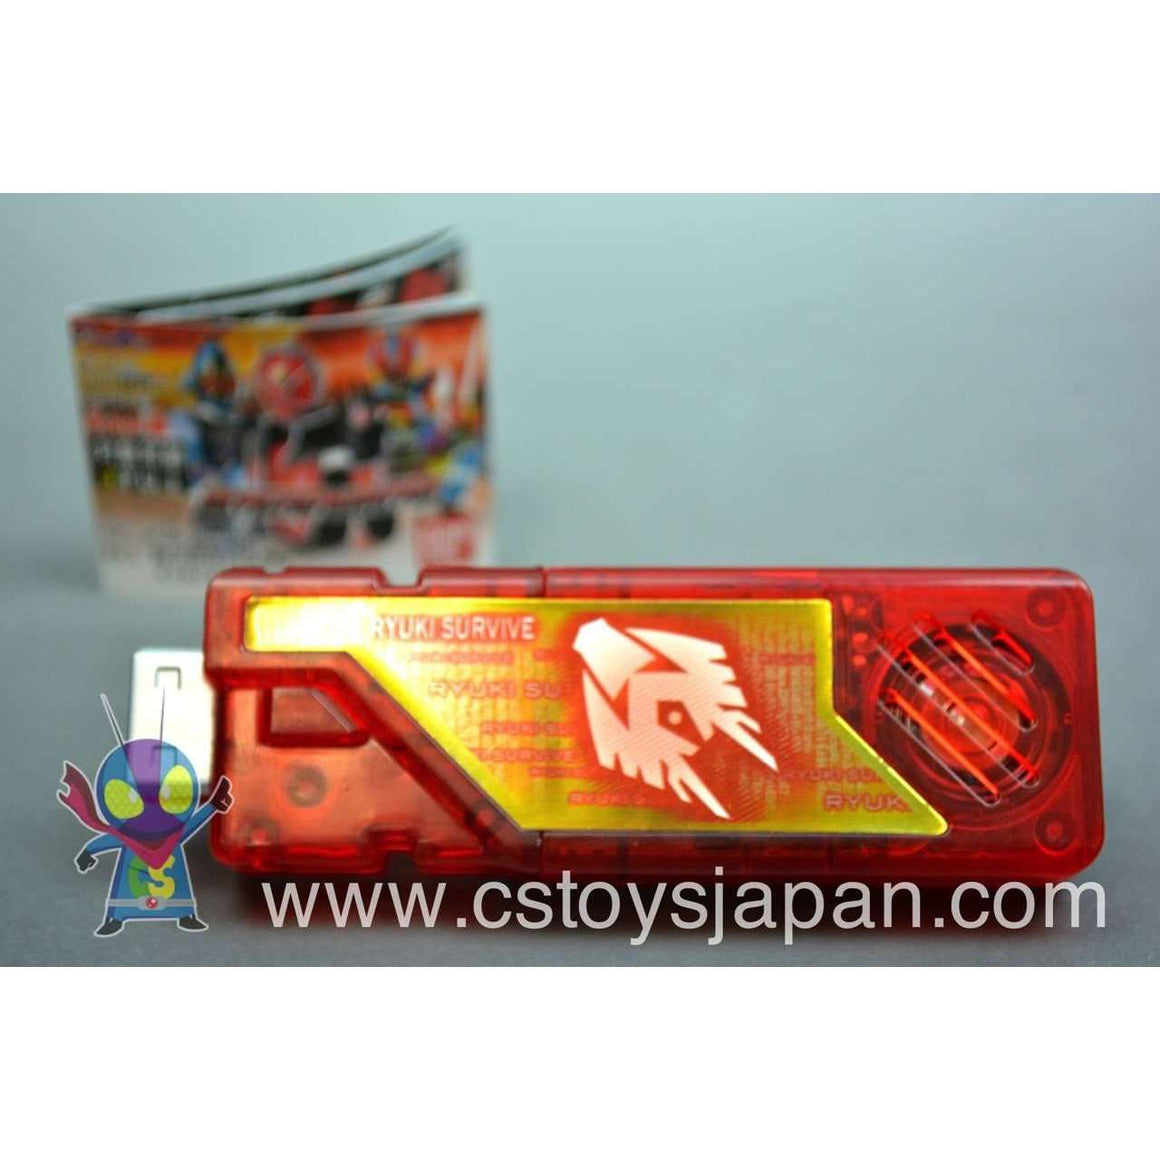 CSTOYS INTERNATIONAL:Kamen Rider W DX Sound Capsule Gaia Memory Vol.8 #06 Ryuki Survive